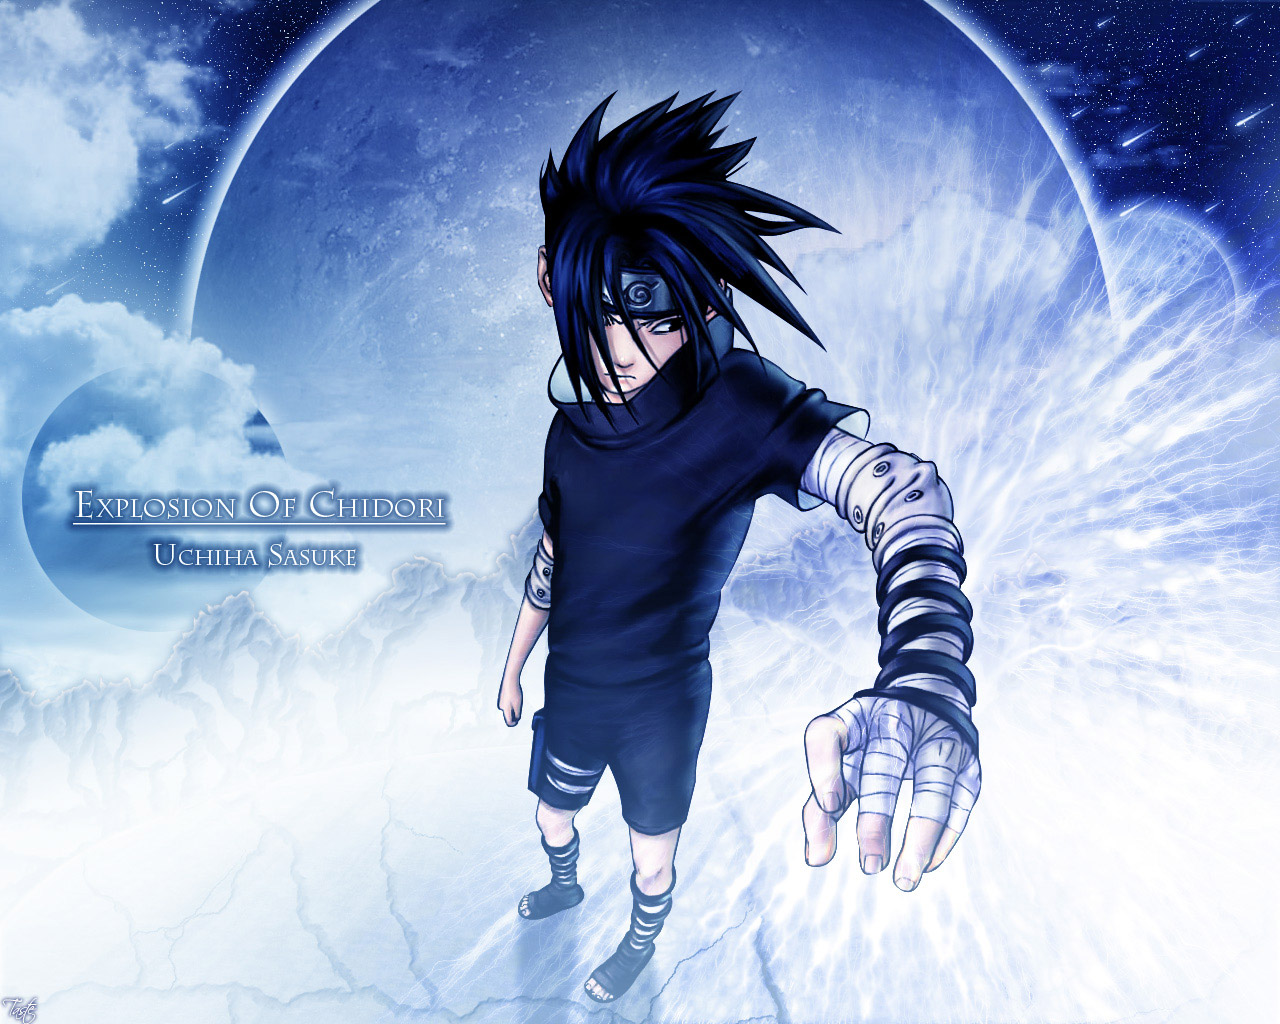 Sasuke uchiha wallpapers hd wallpapersafari uchiha sasuke uchiha sasuke 34394719 1280 1024jpg 1280x1024 voltagebd Image collections